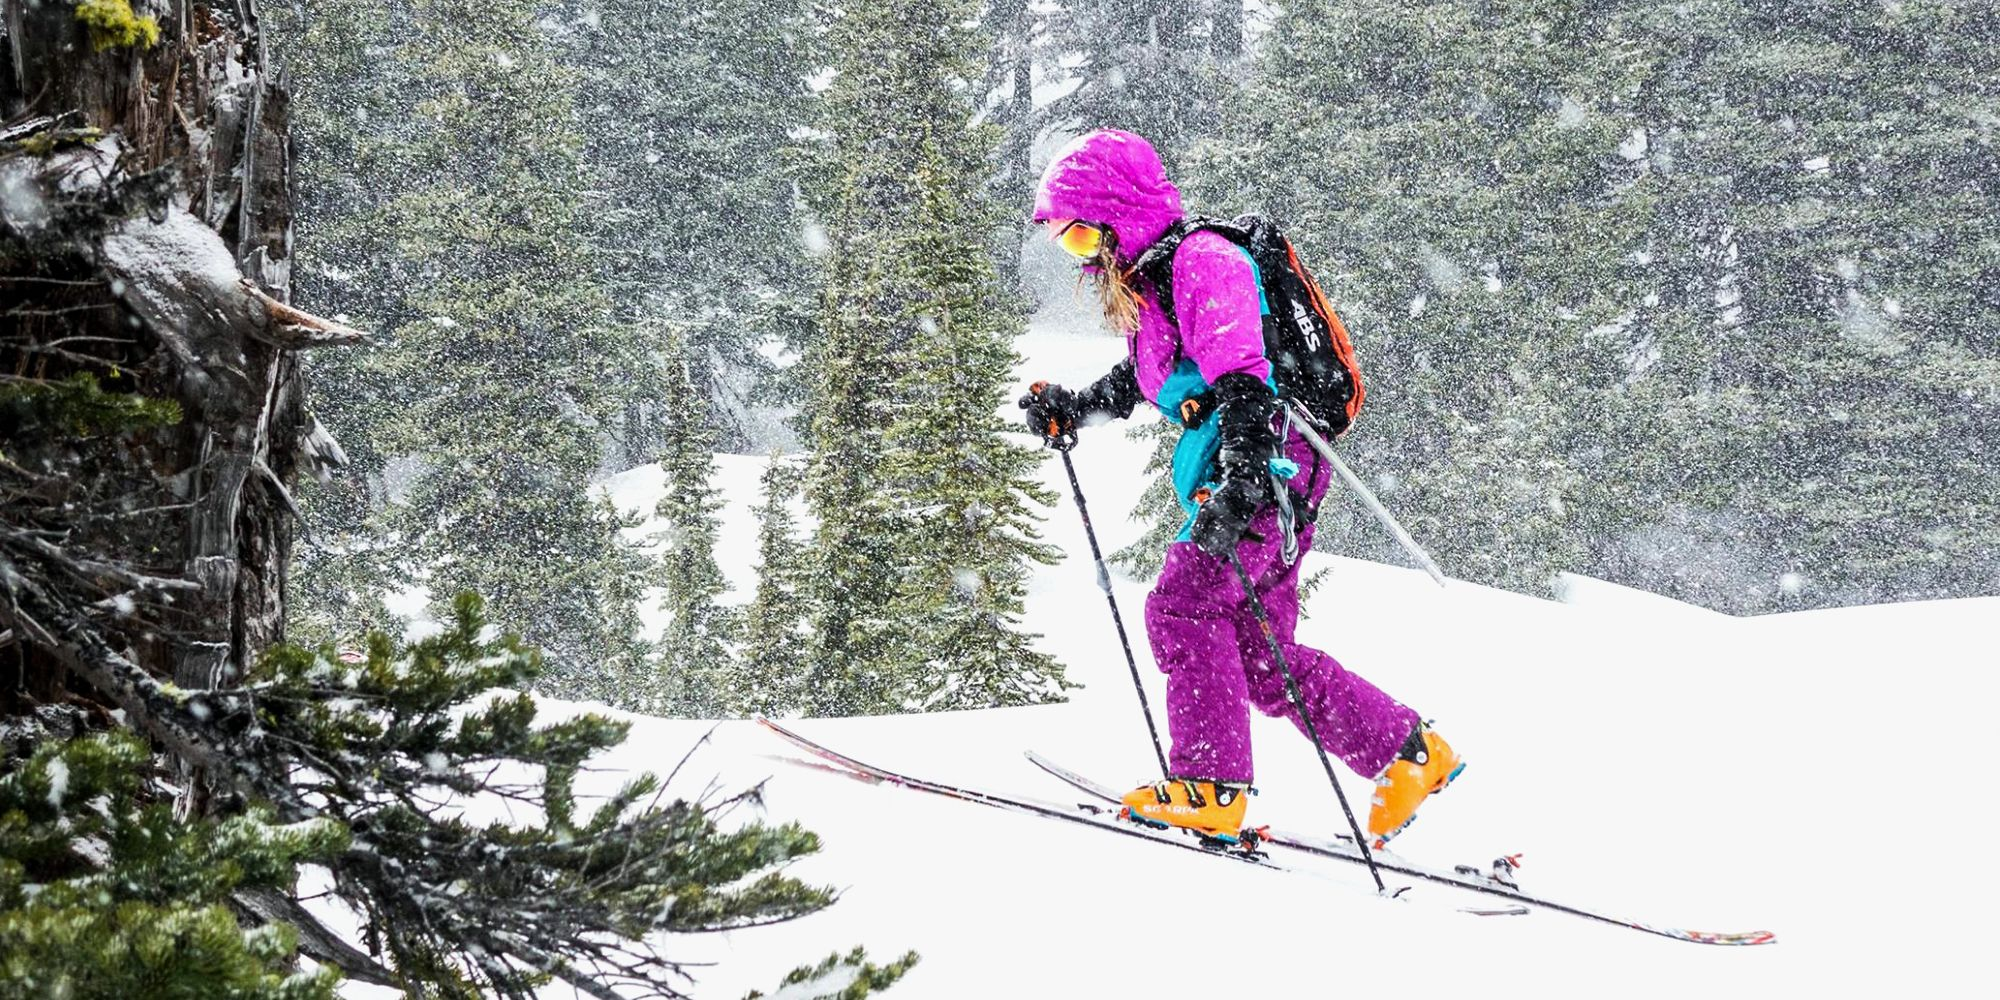 11 Best Ski Boots for the 2019 Season - All Mountain Ski Boots for ... 673a8f7e27495